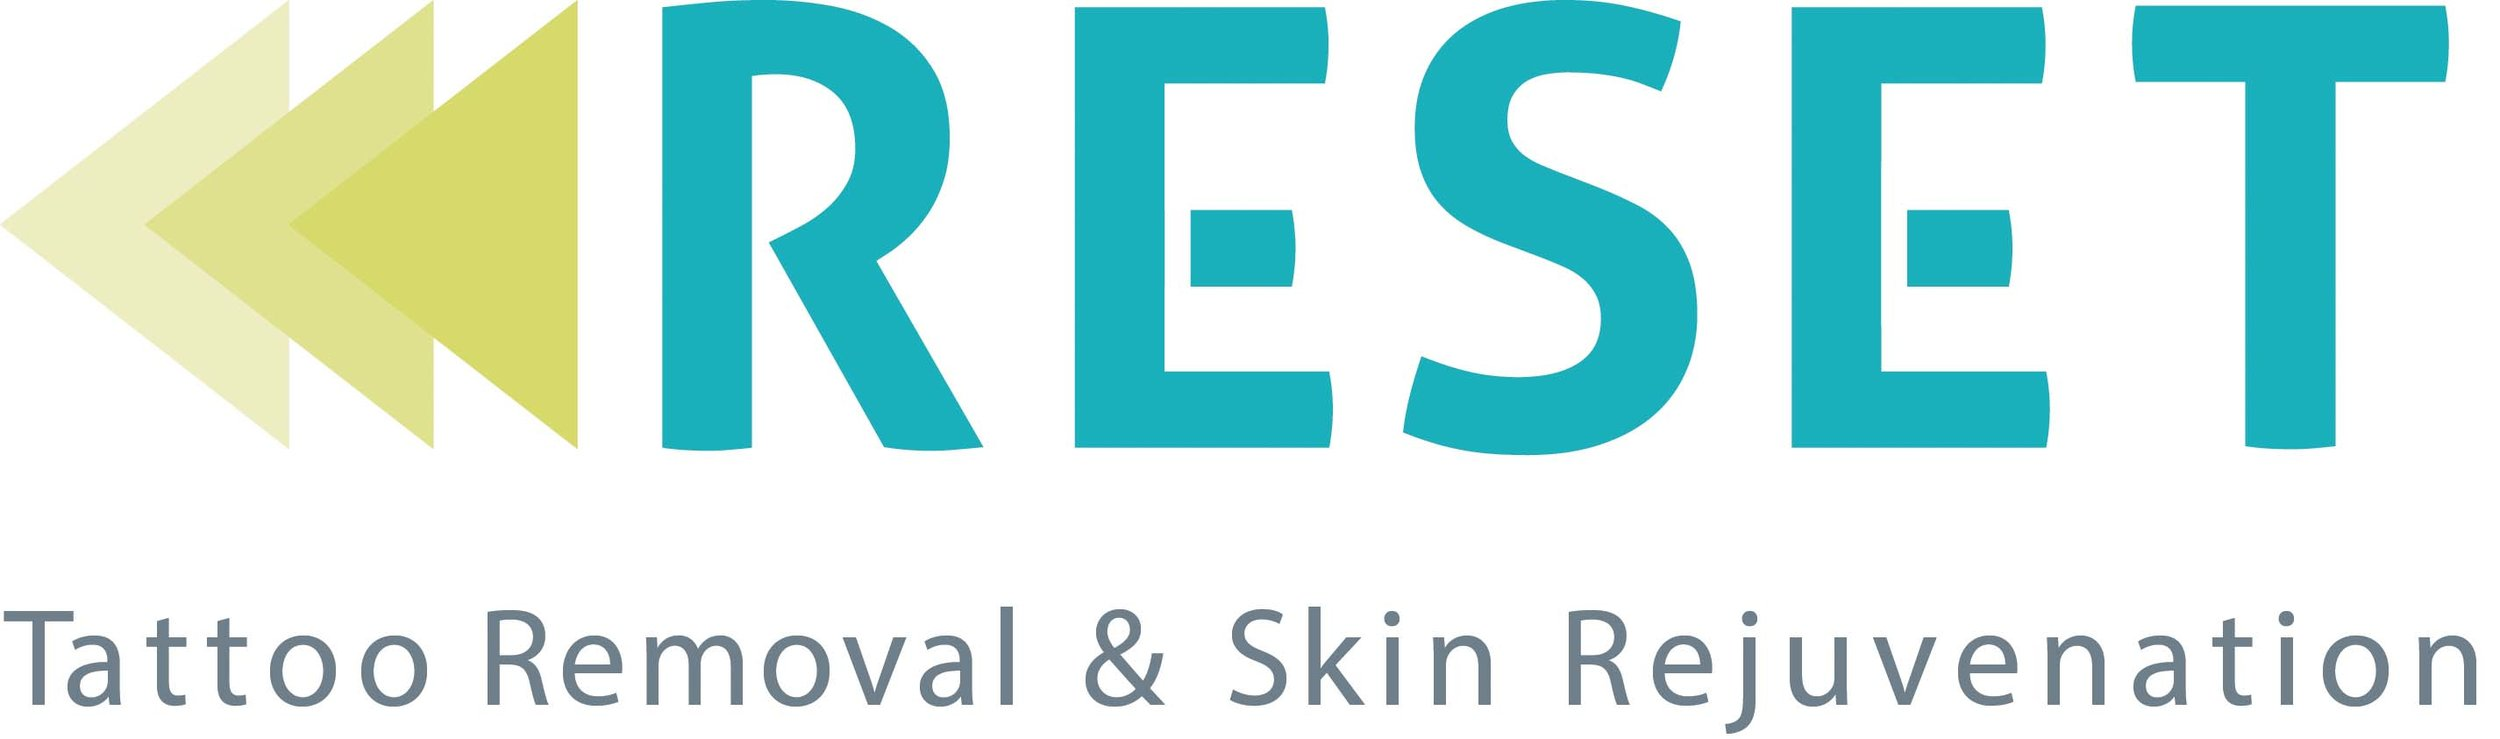 Advertising & Copywriting - Overview:Portfolio based presentation on advertising recommendations for a Reset Tattoo Removal & Skin Rejuvenation.